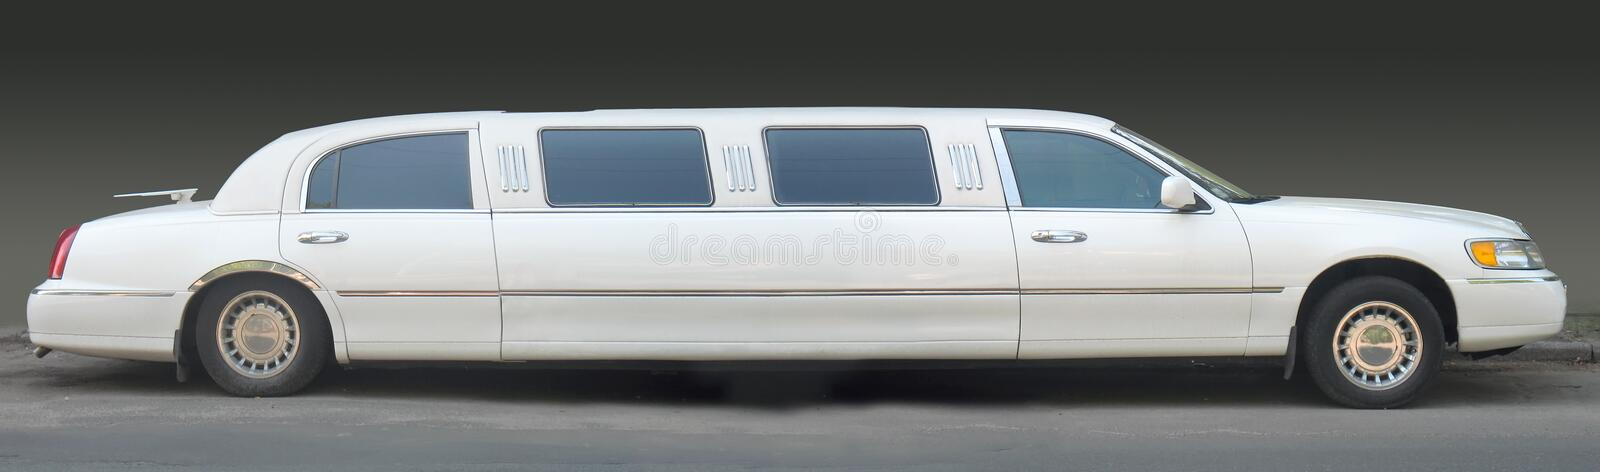 White limousine. On dark background stock image